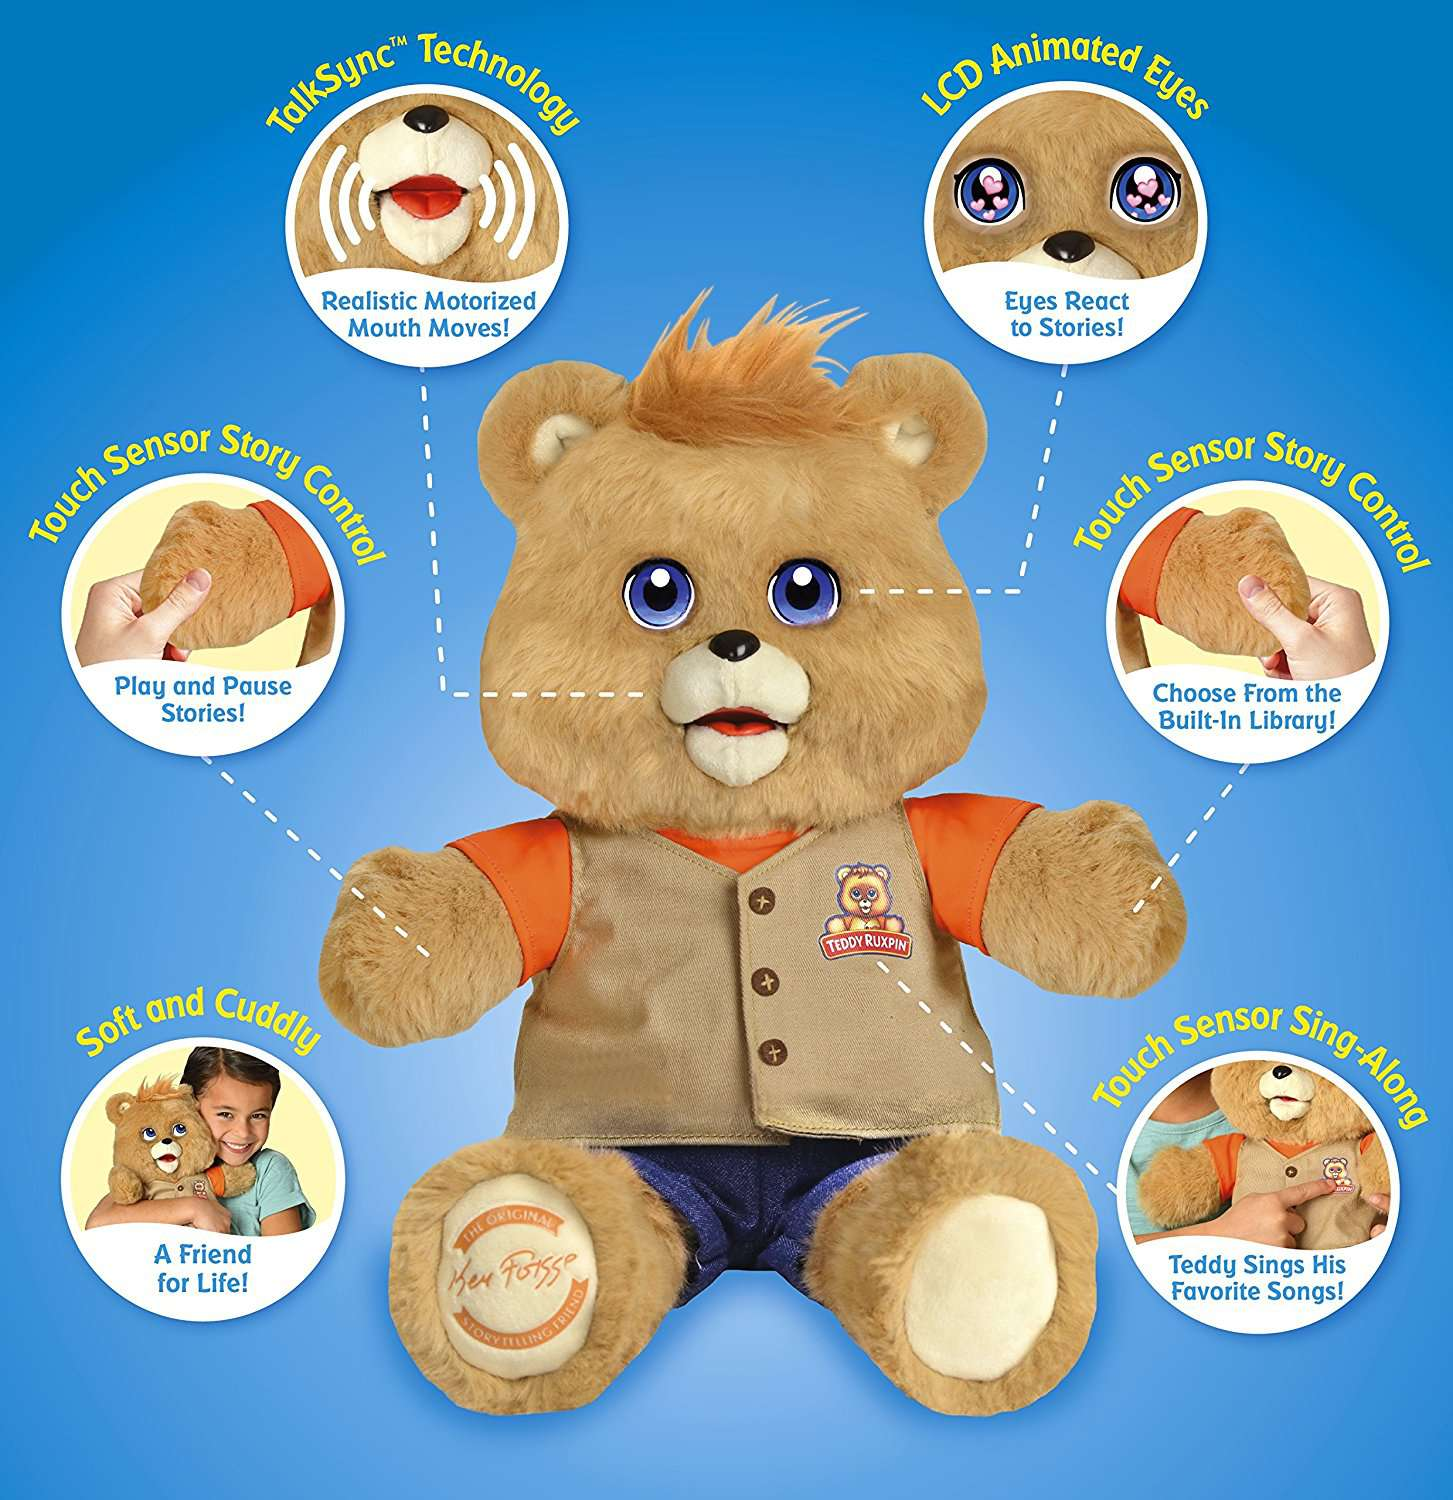 2017 Teddy Ruxpin Lcd Eyes Features Gadgetking Com